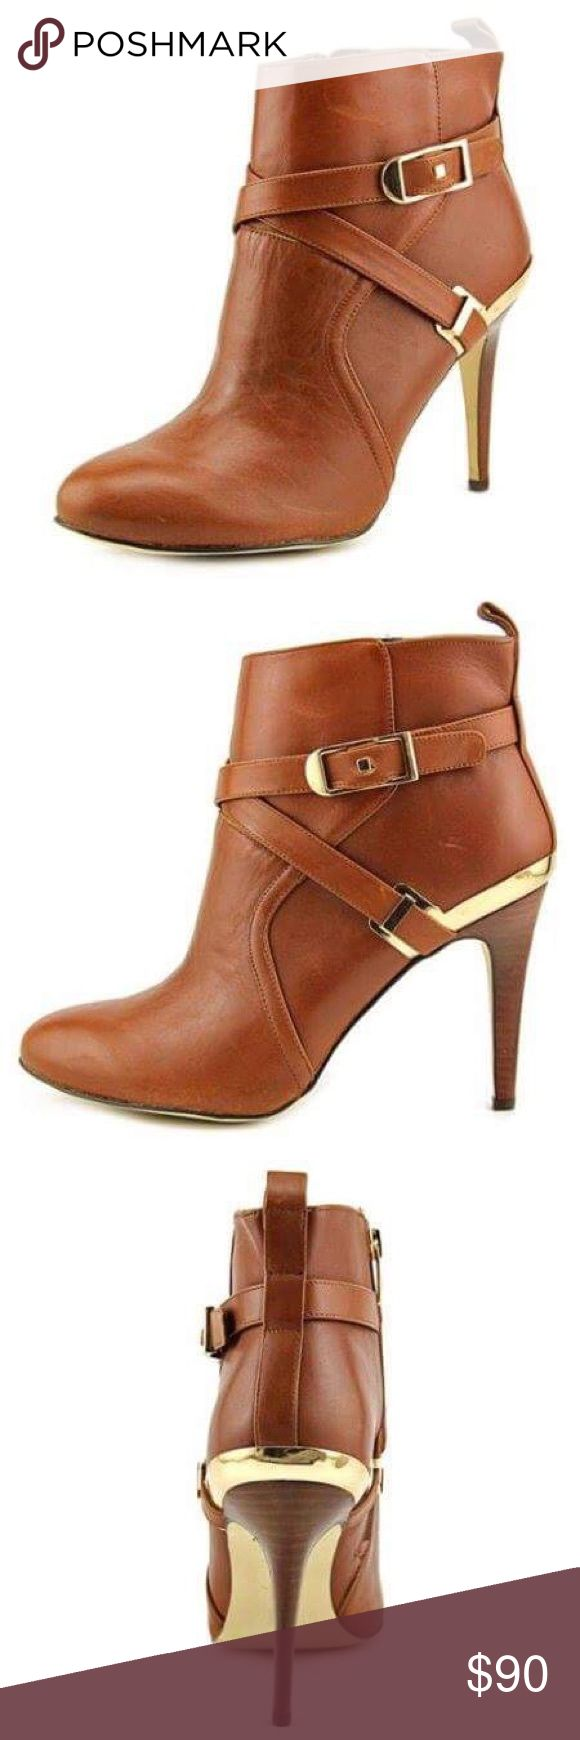 NIB Marc Fisher Aprille Leather Bootie Size too big for me  Marc Fisher  Shoes Ankle Boots & Booties